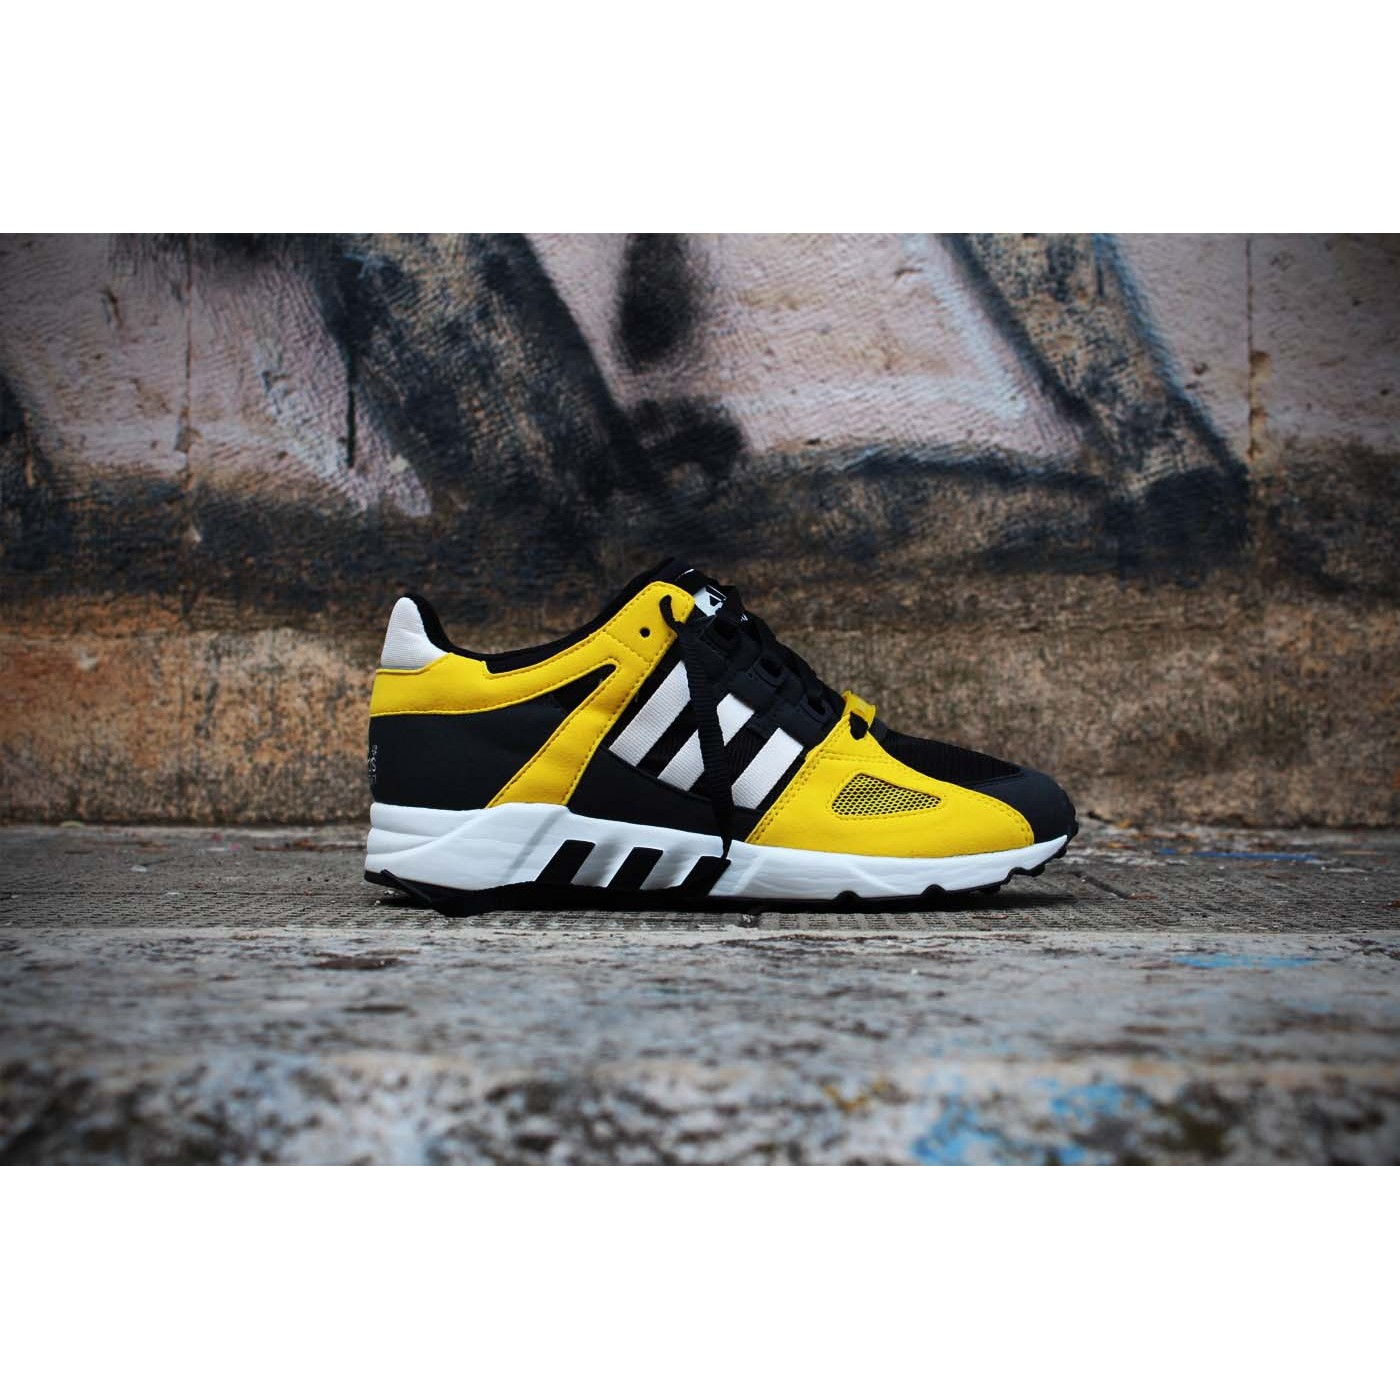 Adidas EQT Support RF (Core Black & Turbo) End